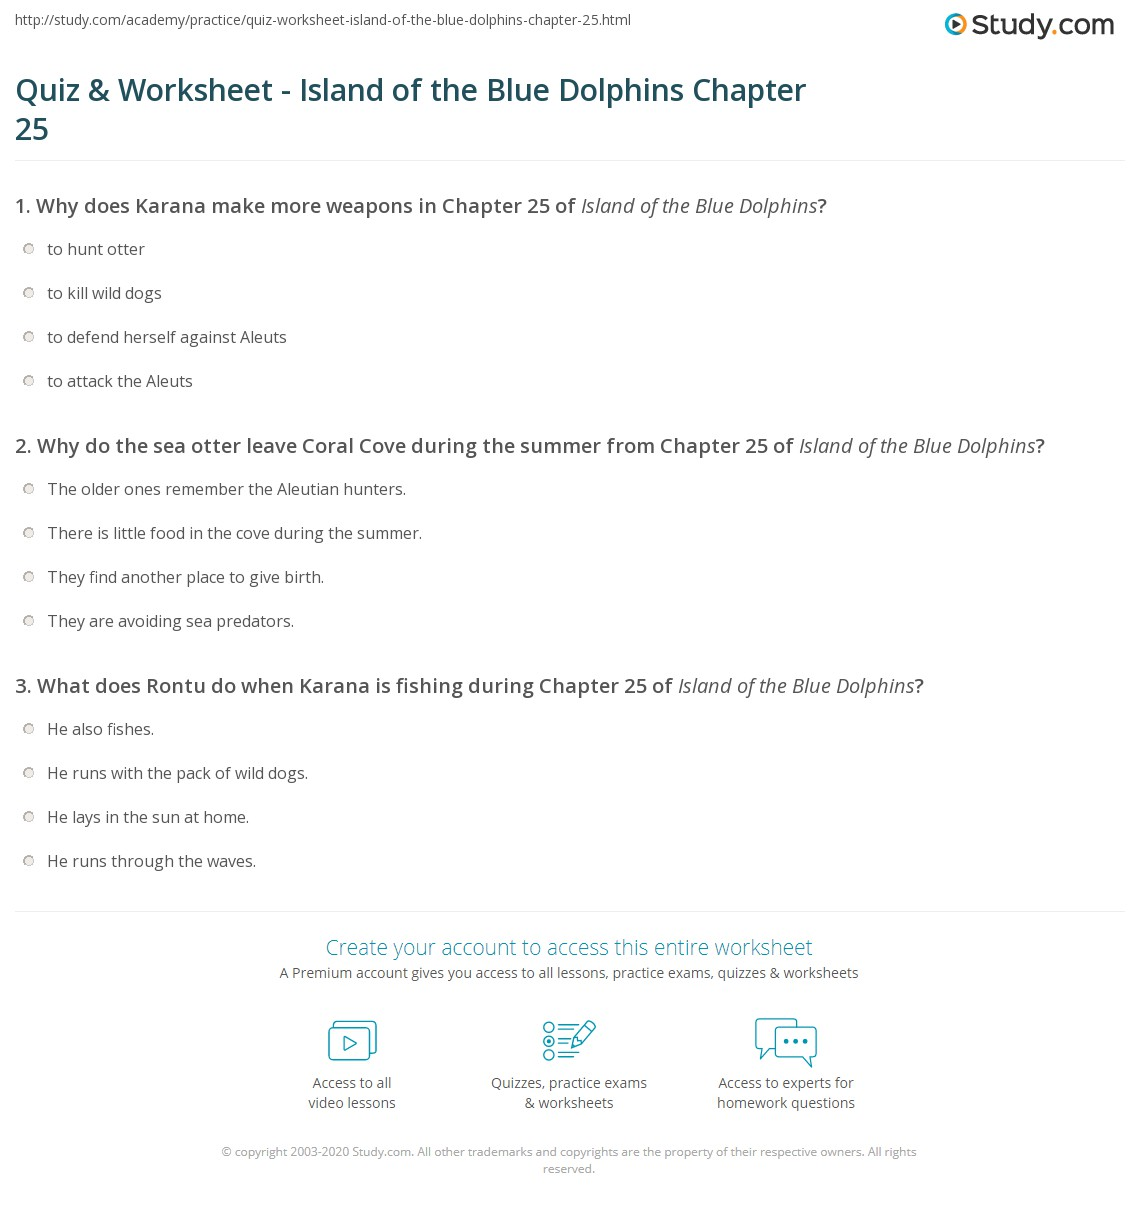 Quiz Worksheet Island Of The Blue Dolphins Chapter 25